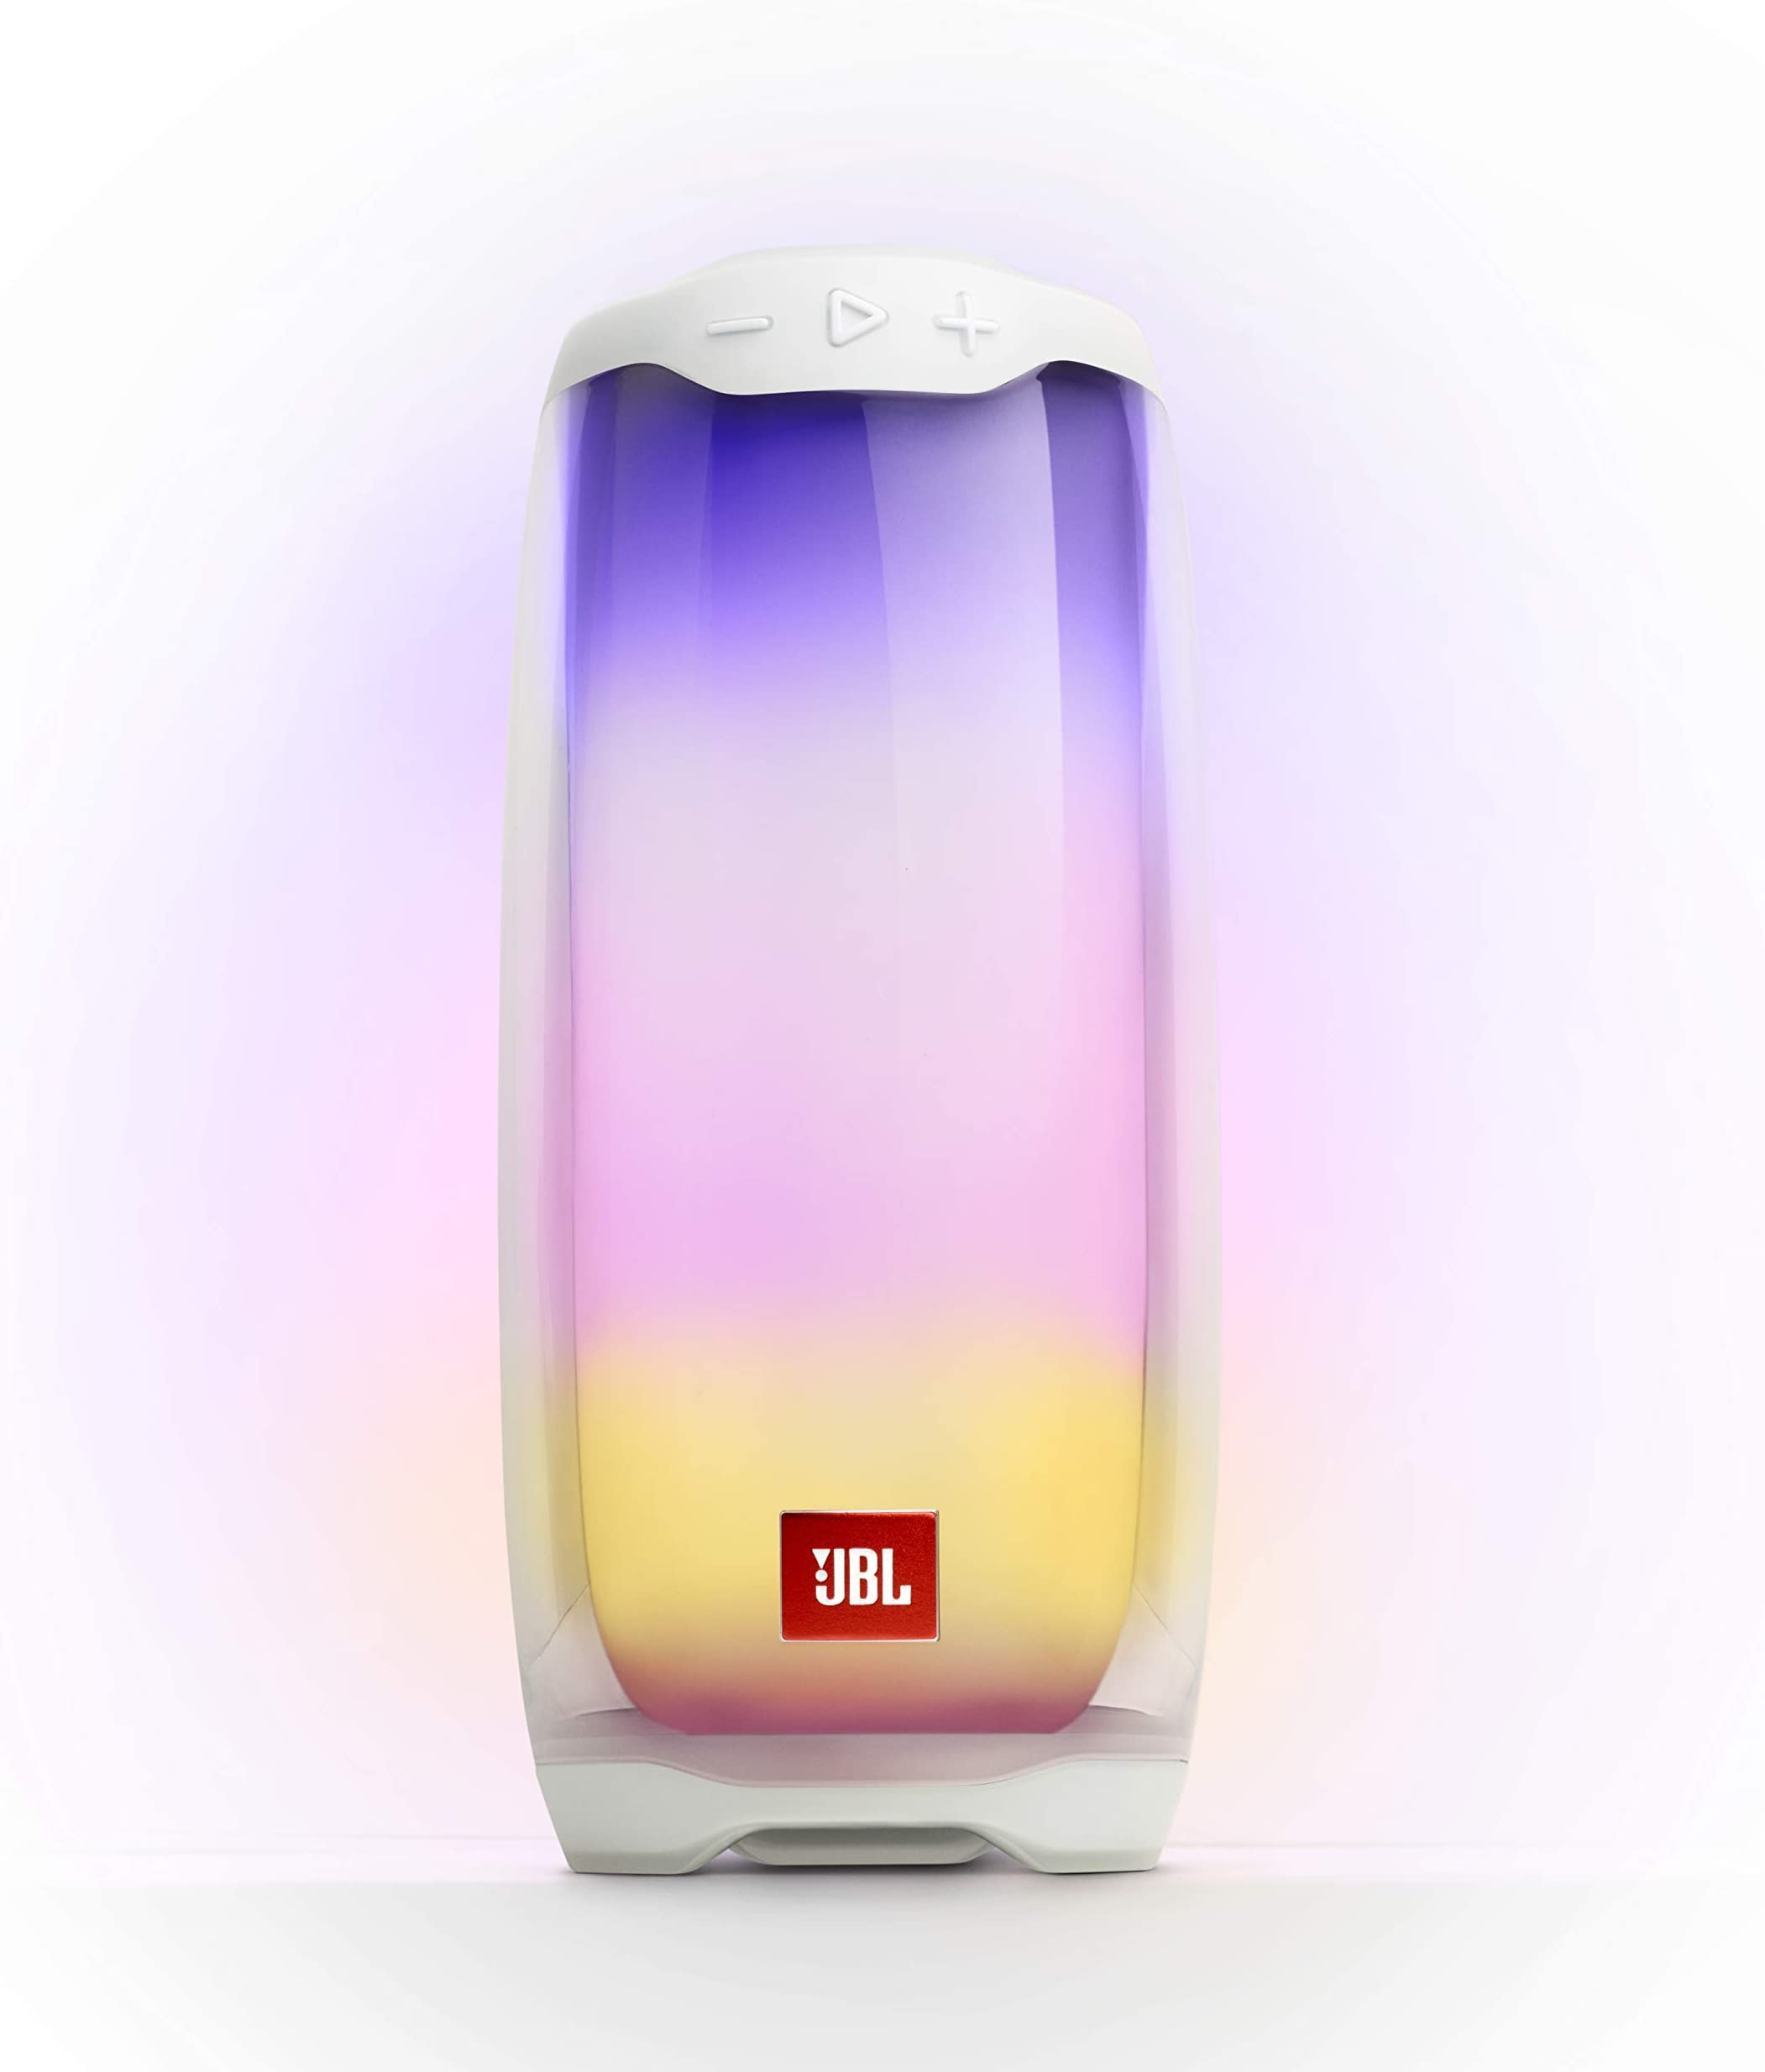 JBL Pulse 4 - Portable Bluetooth Speaker with 360 degrees LED lights, powerful sound and deep bass, IPX7 waterproof, 12 hours of playtime, JBL PartyBoost for multiple speaker pairing (White)